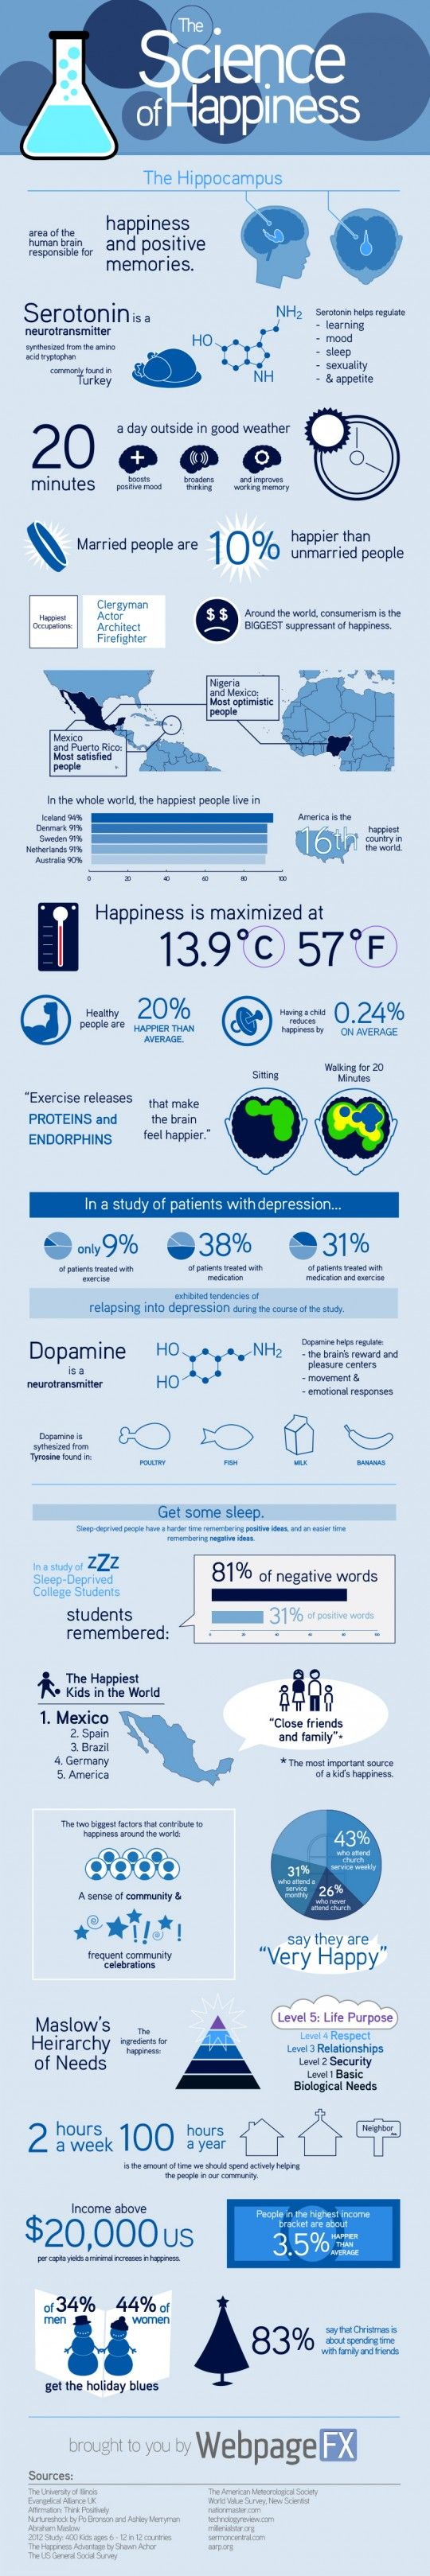 How to be happy Alone  Infographic Reveals Science of Happiness